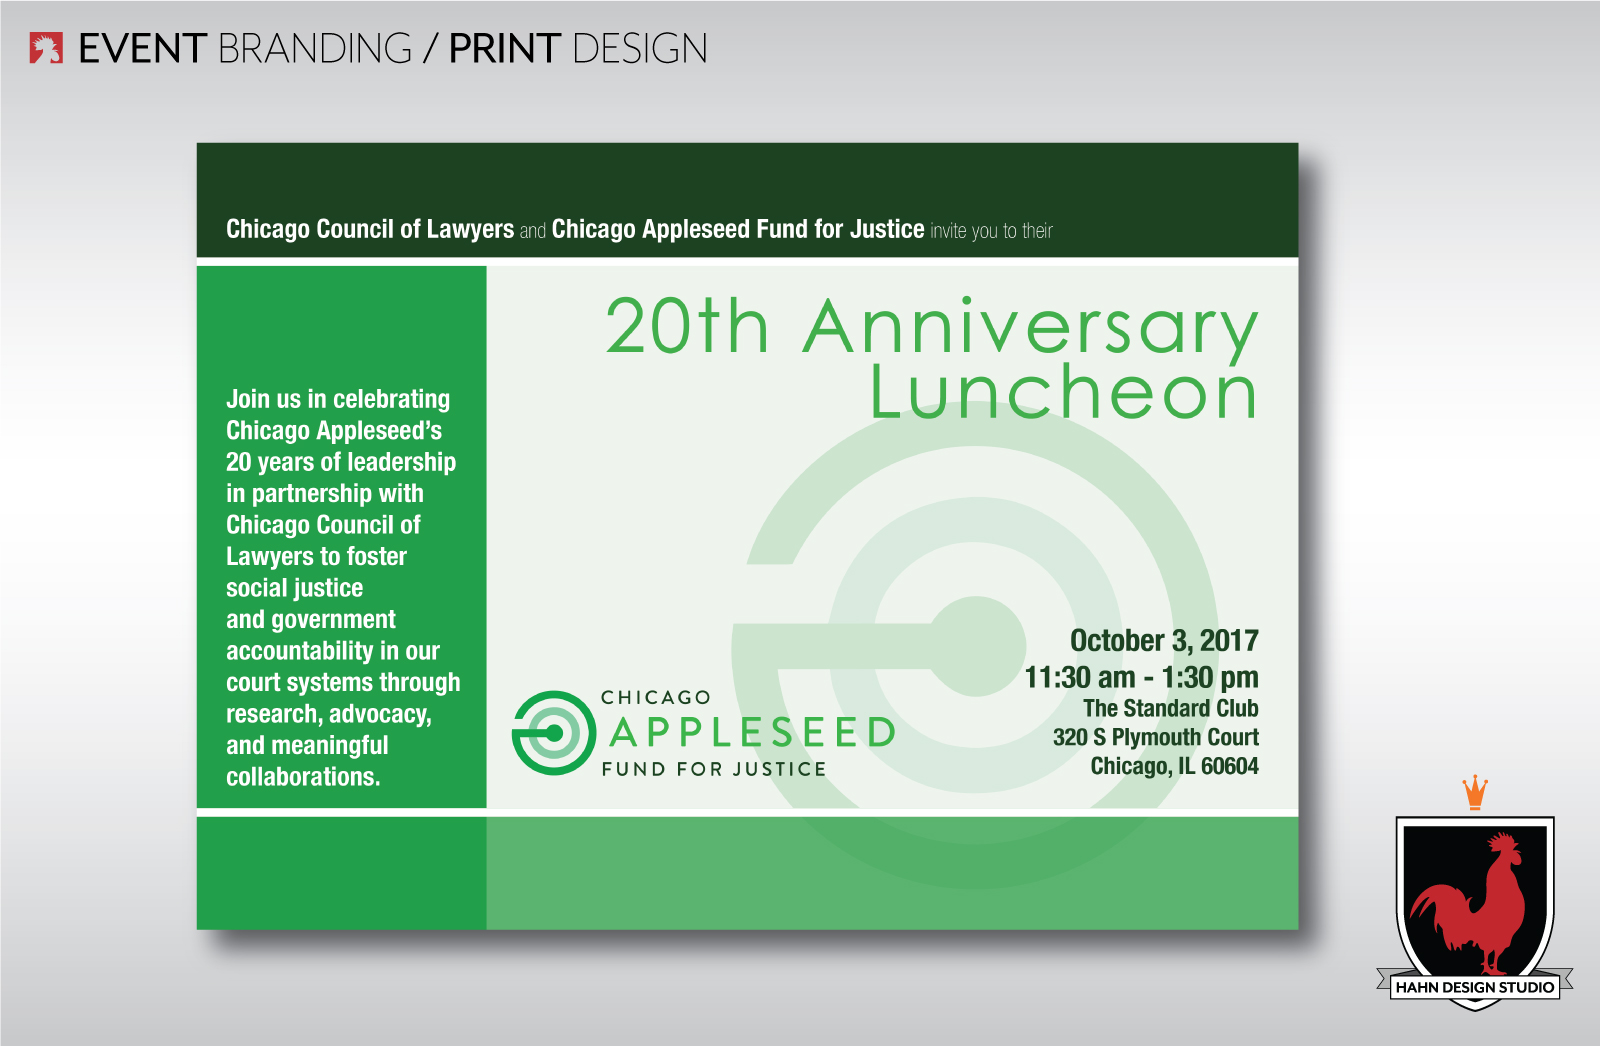 Event Branding & Print Design for the Chicago Appleseed 20th Anniversary Luncheon